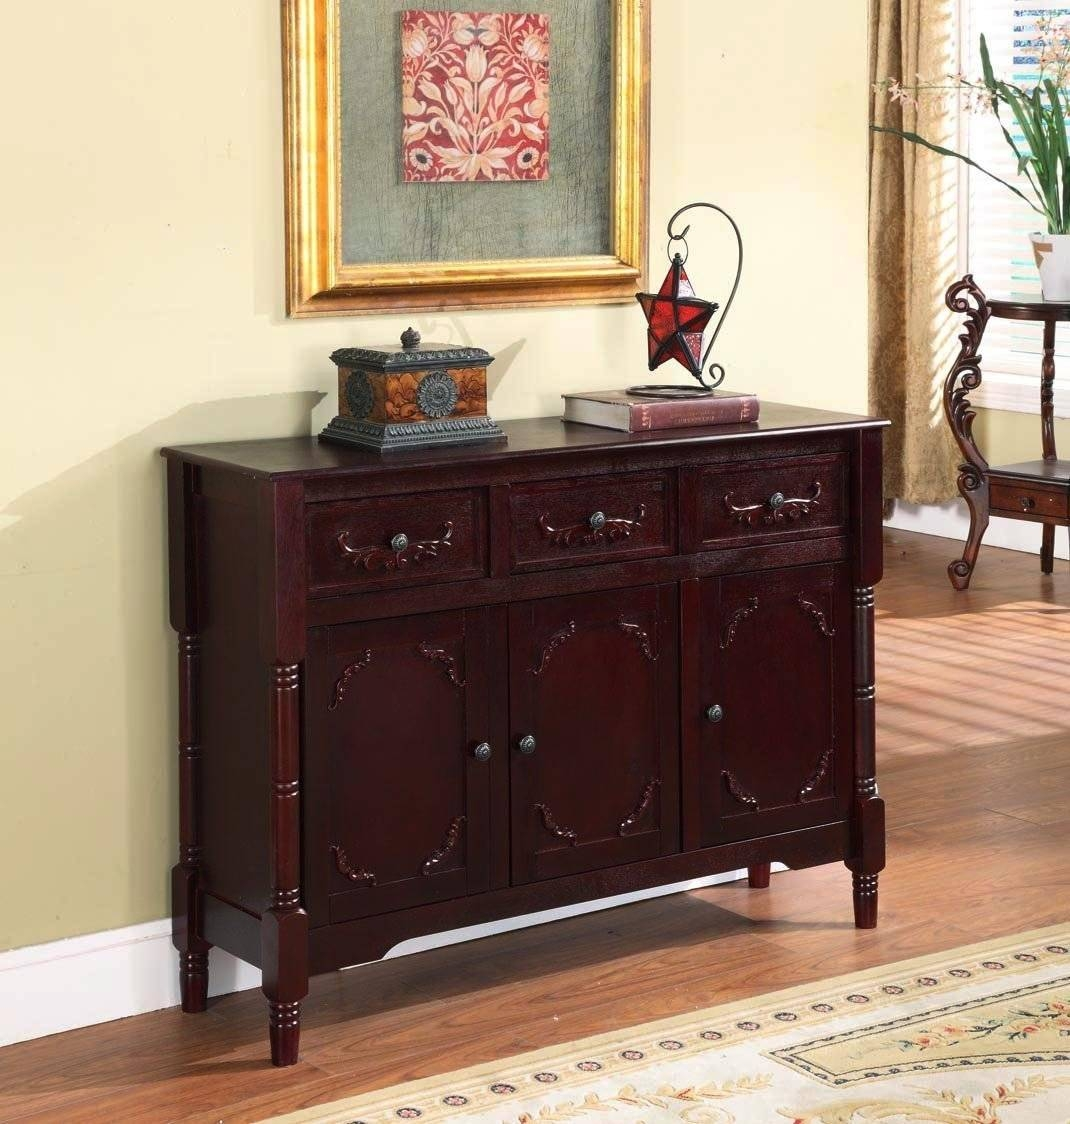 Sideboard: Awesome Overstock Sideboard For Sale Dining Room With Regard To Most Up To Date Overstock Sideboards (#15 of 15)